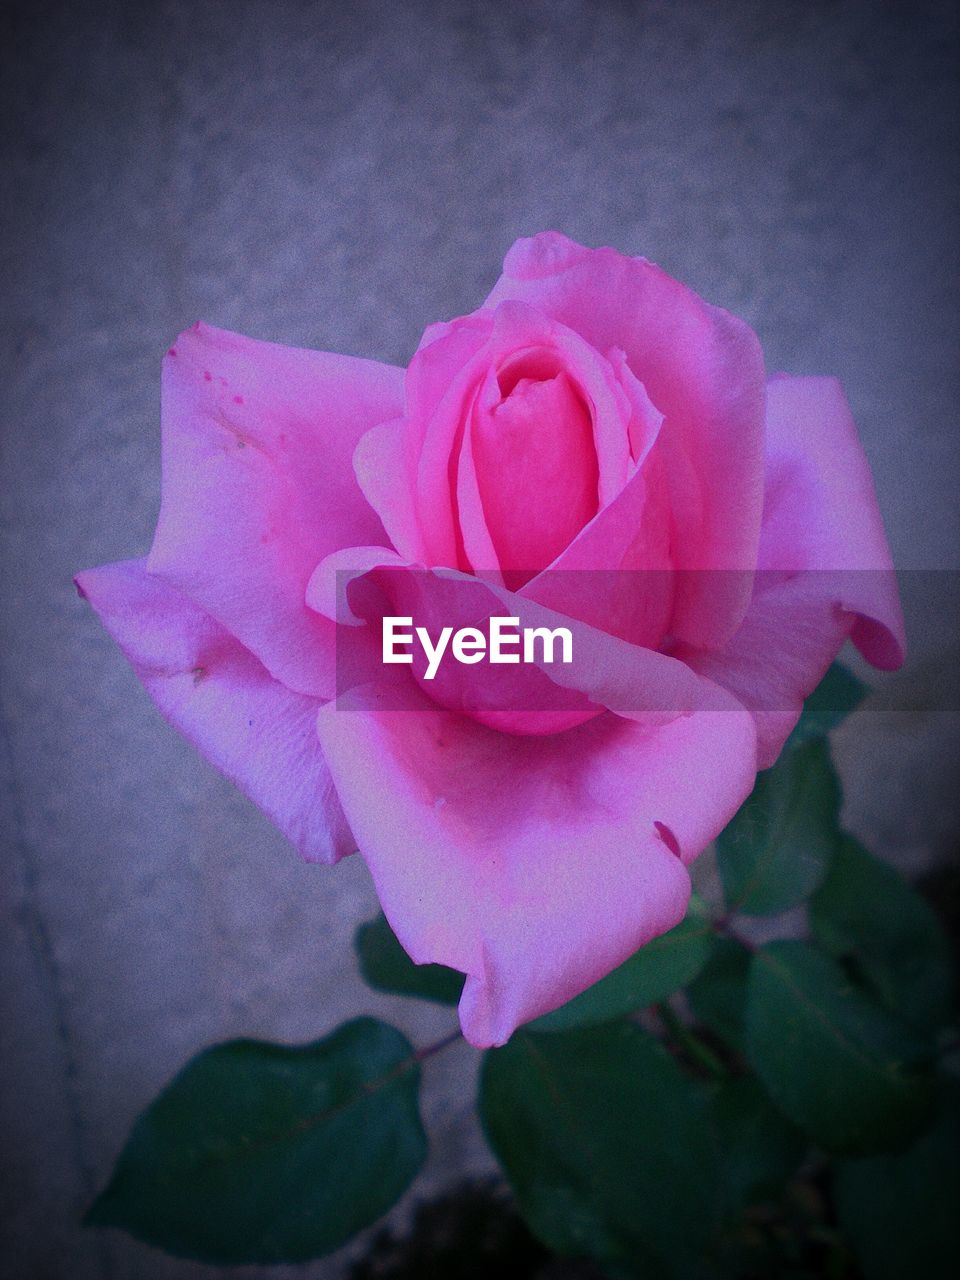 petal, flower, pink color, flower head, no people, rose - flower, nature, beauty in nature, close-up, fragility, freshness, outdoors, day